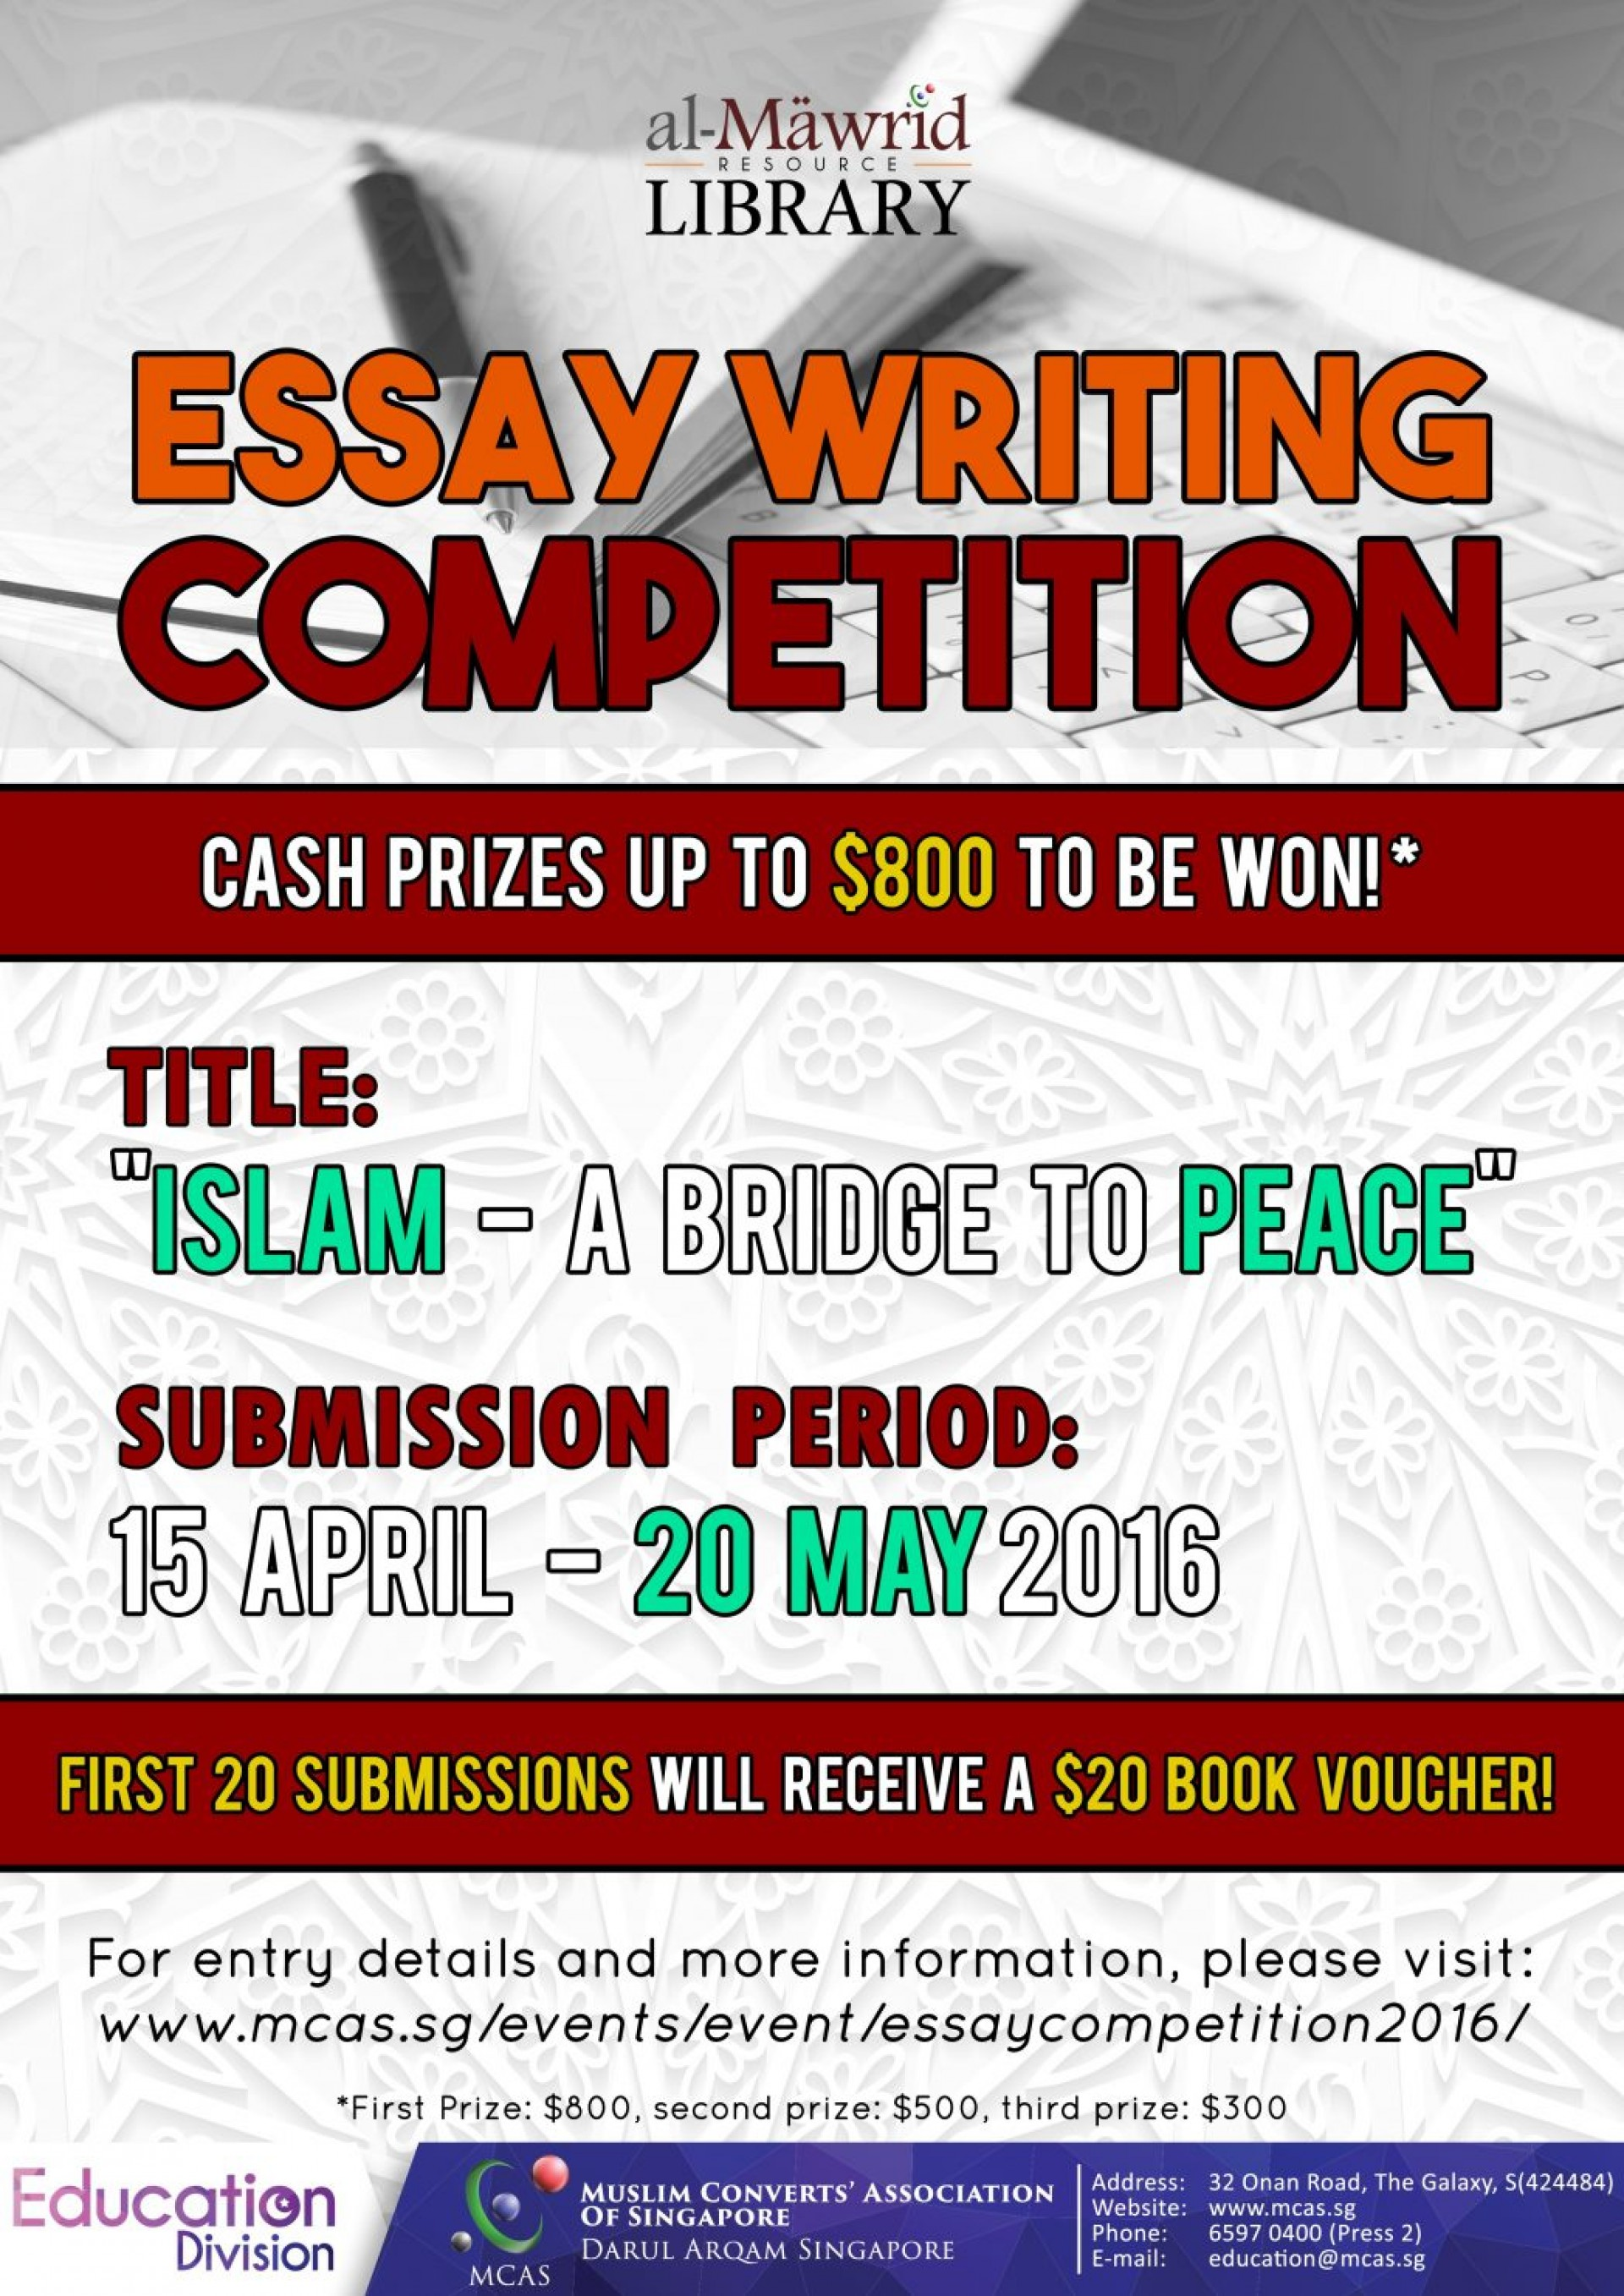 024 Buysay Com Ua Close Up Front Rank Firm In Australia To Writing Contest Criteria Version 2 Competition New Philippines Rubrics Mechanics Guidelines Tips For Nutrition 1048x1482 Incredible Essay College Students By Essayhub Sample 1920